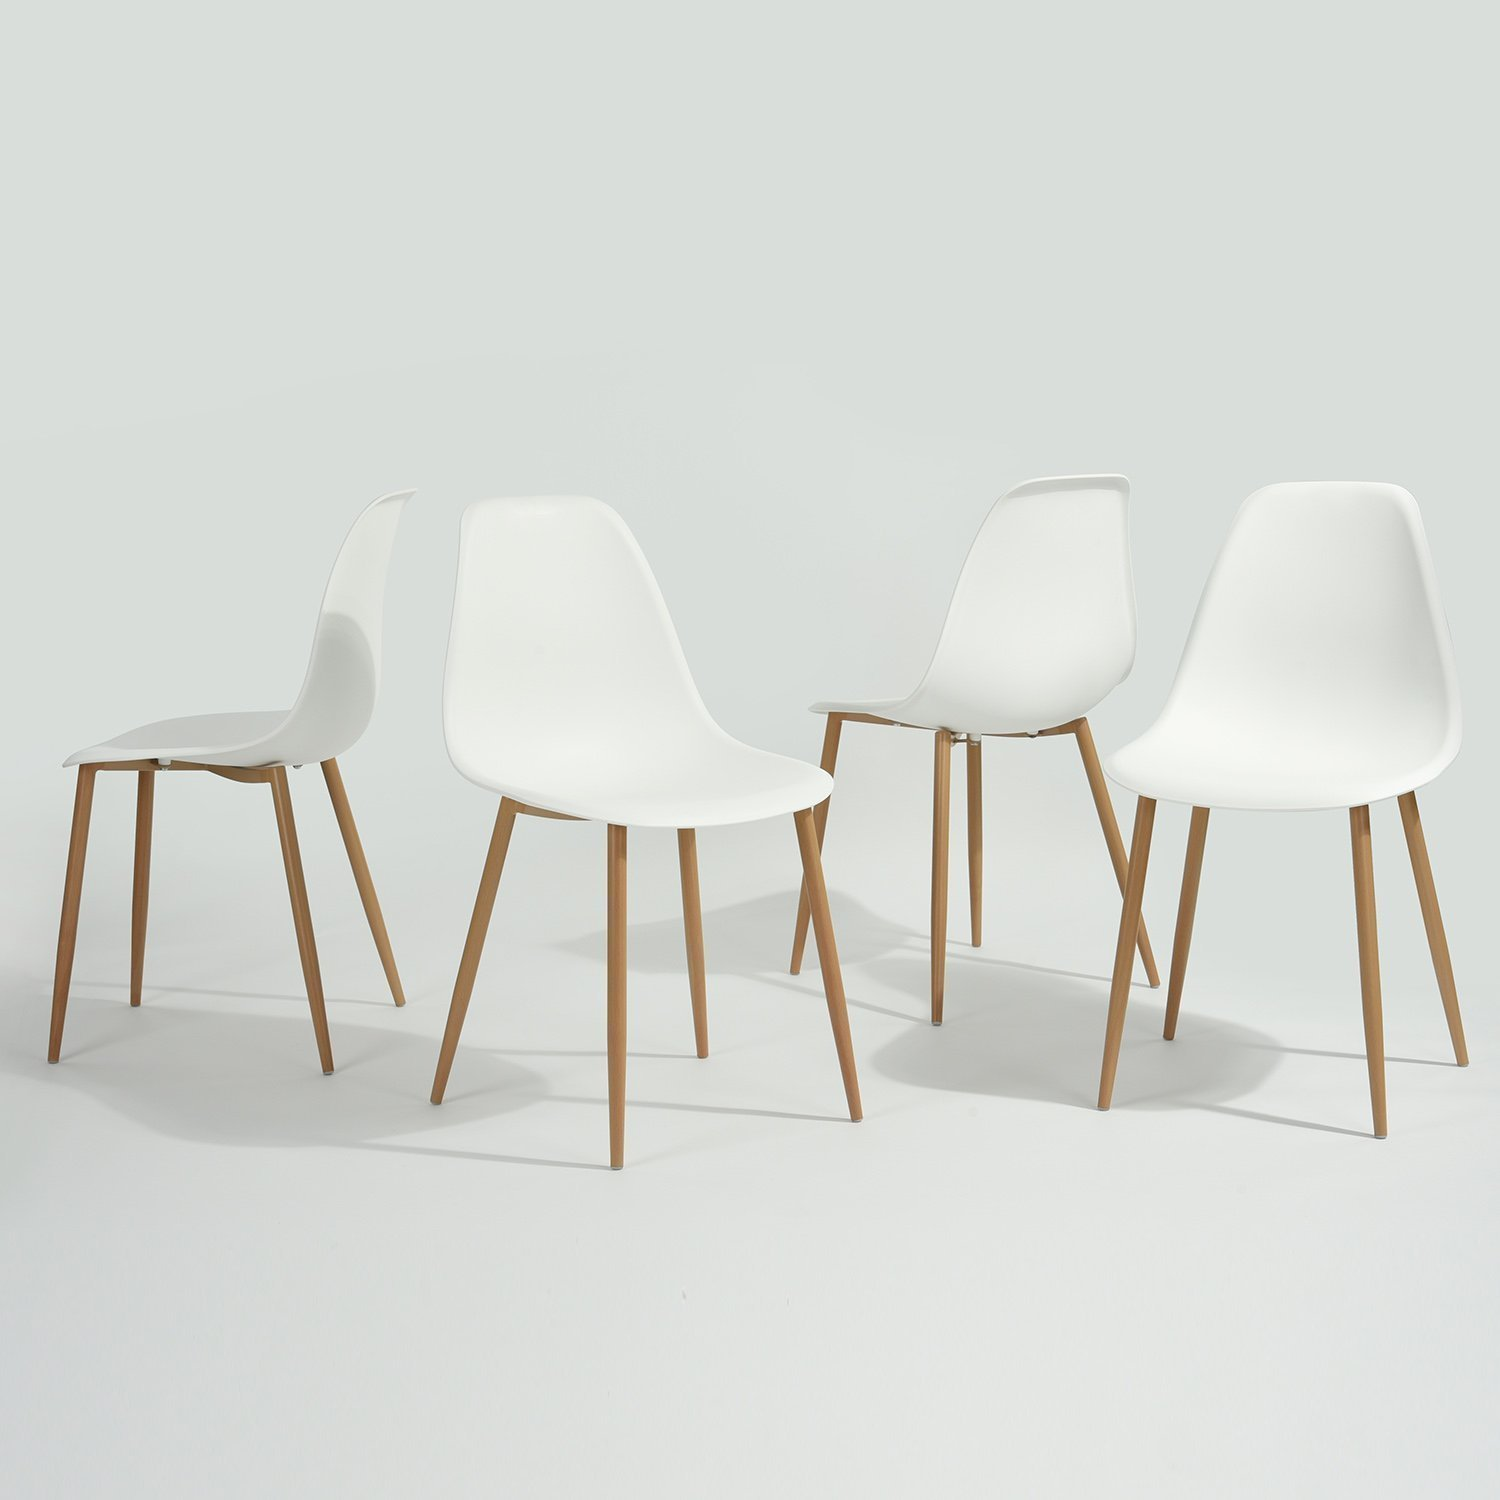 Swell Greenforest Dining Chairs Modern Style Chairs Plastic Chairs Metal Legs With Mood Grain Living Room Office Dining Room Chairs Set 4 White Download Free Architecture Designs Rallybritishbridgeorg